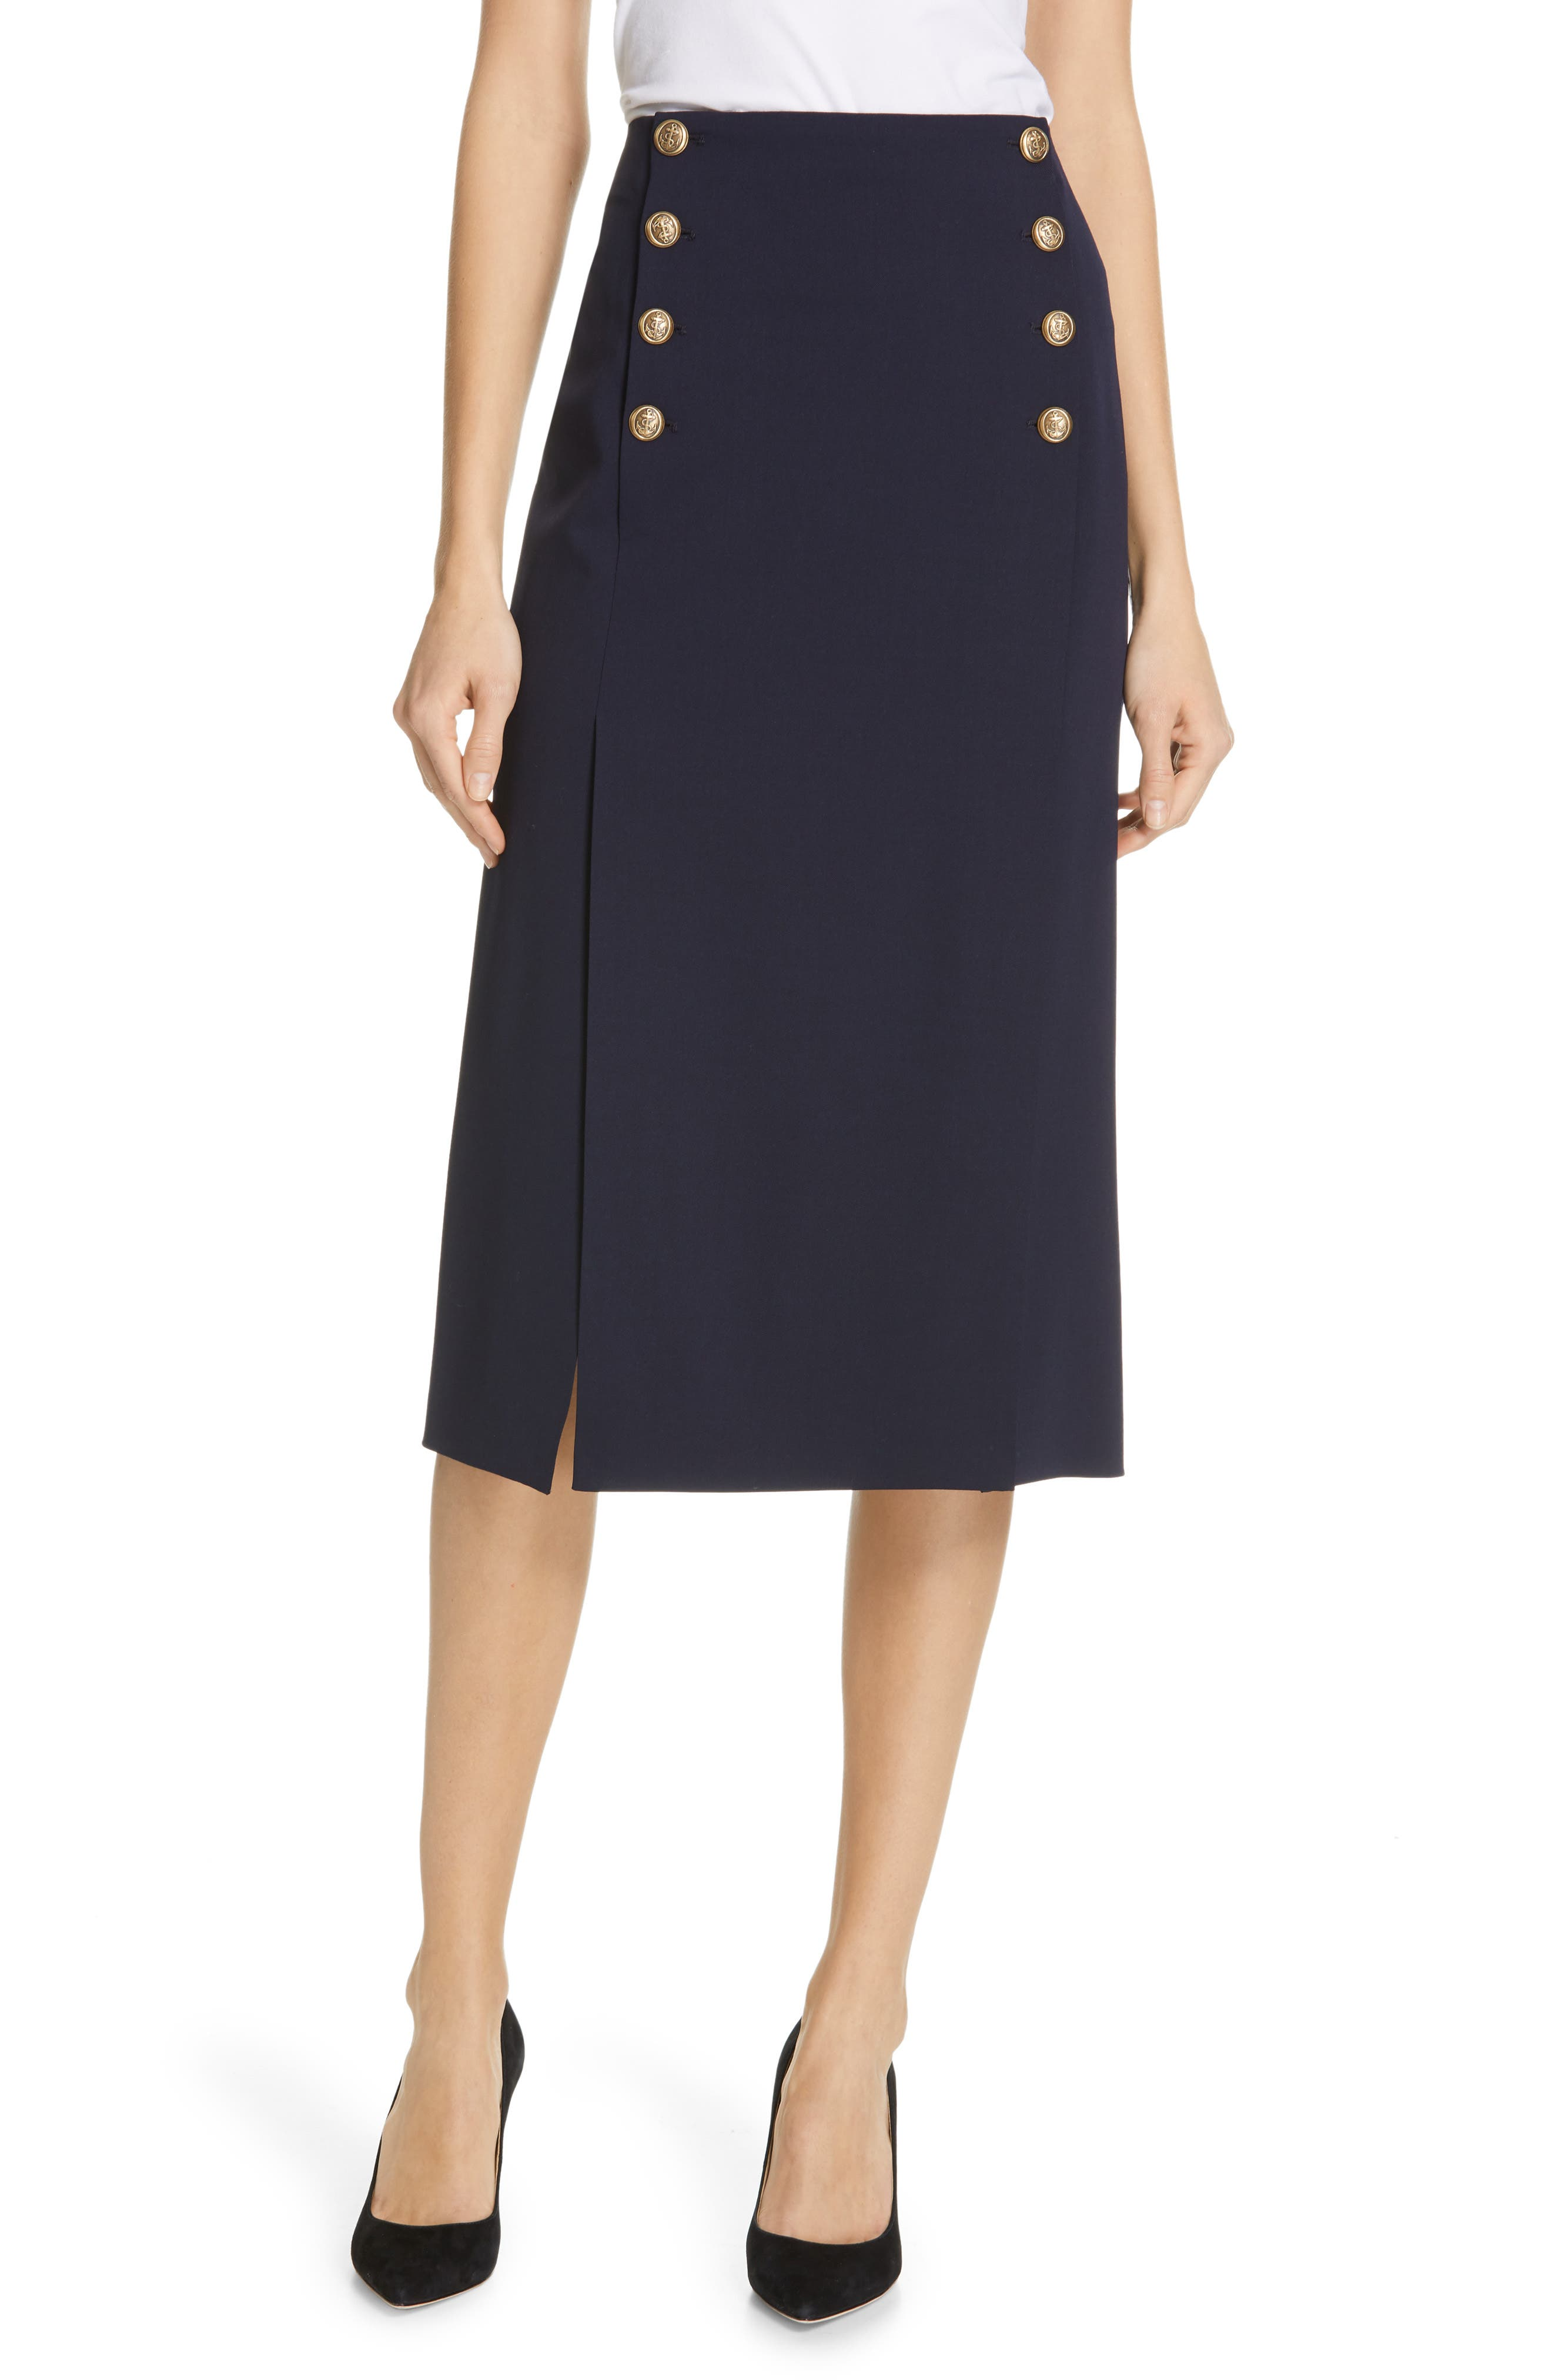 POLO RALPH LAUREN A-Line Skirt, Main, color, NAVY